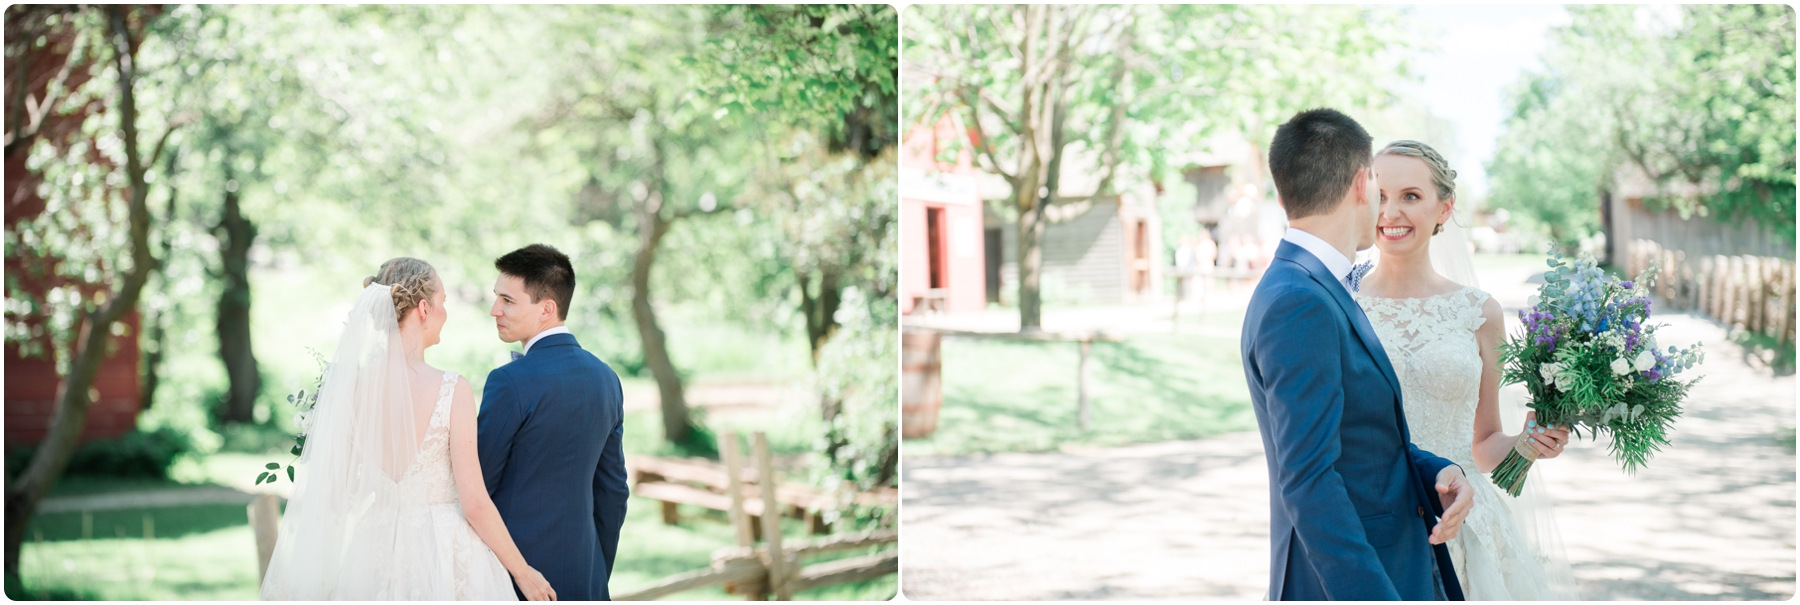 Black Creek Pioneer Village Wedding- Agata & Chris_0192